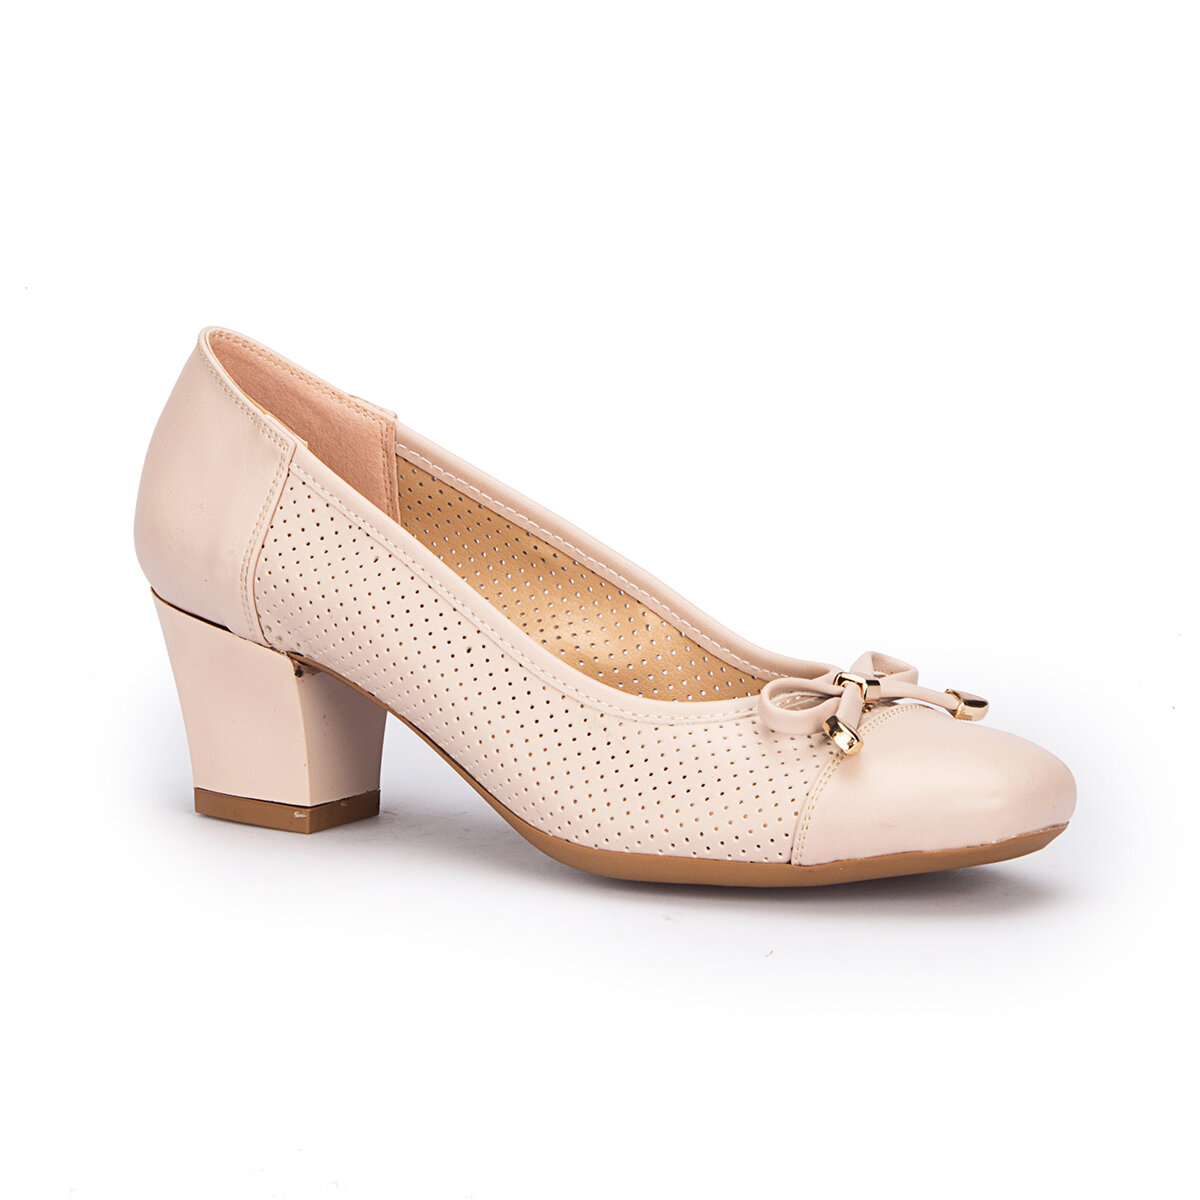 FLO 71. 309759.Z Beige Women Dress Shoes Polaris